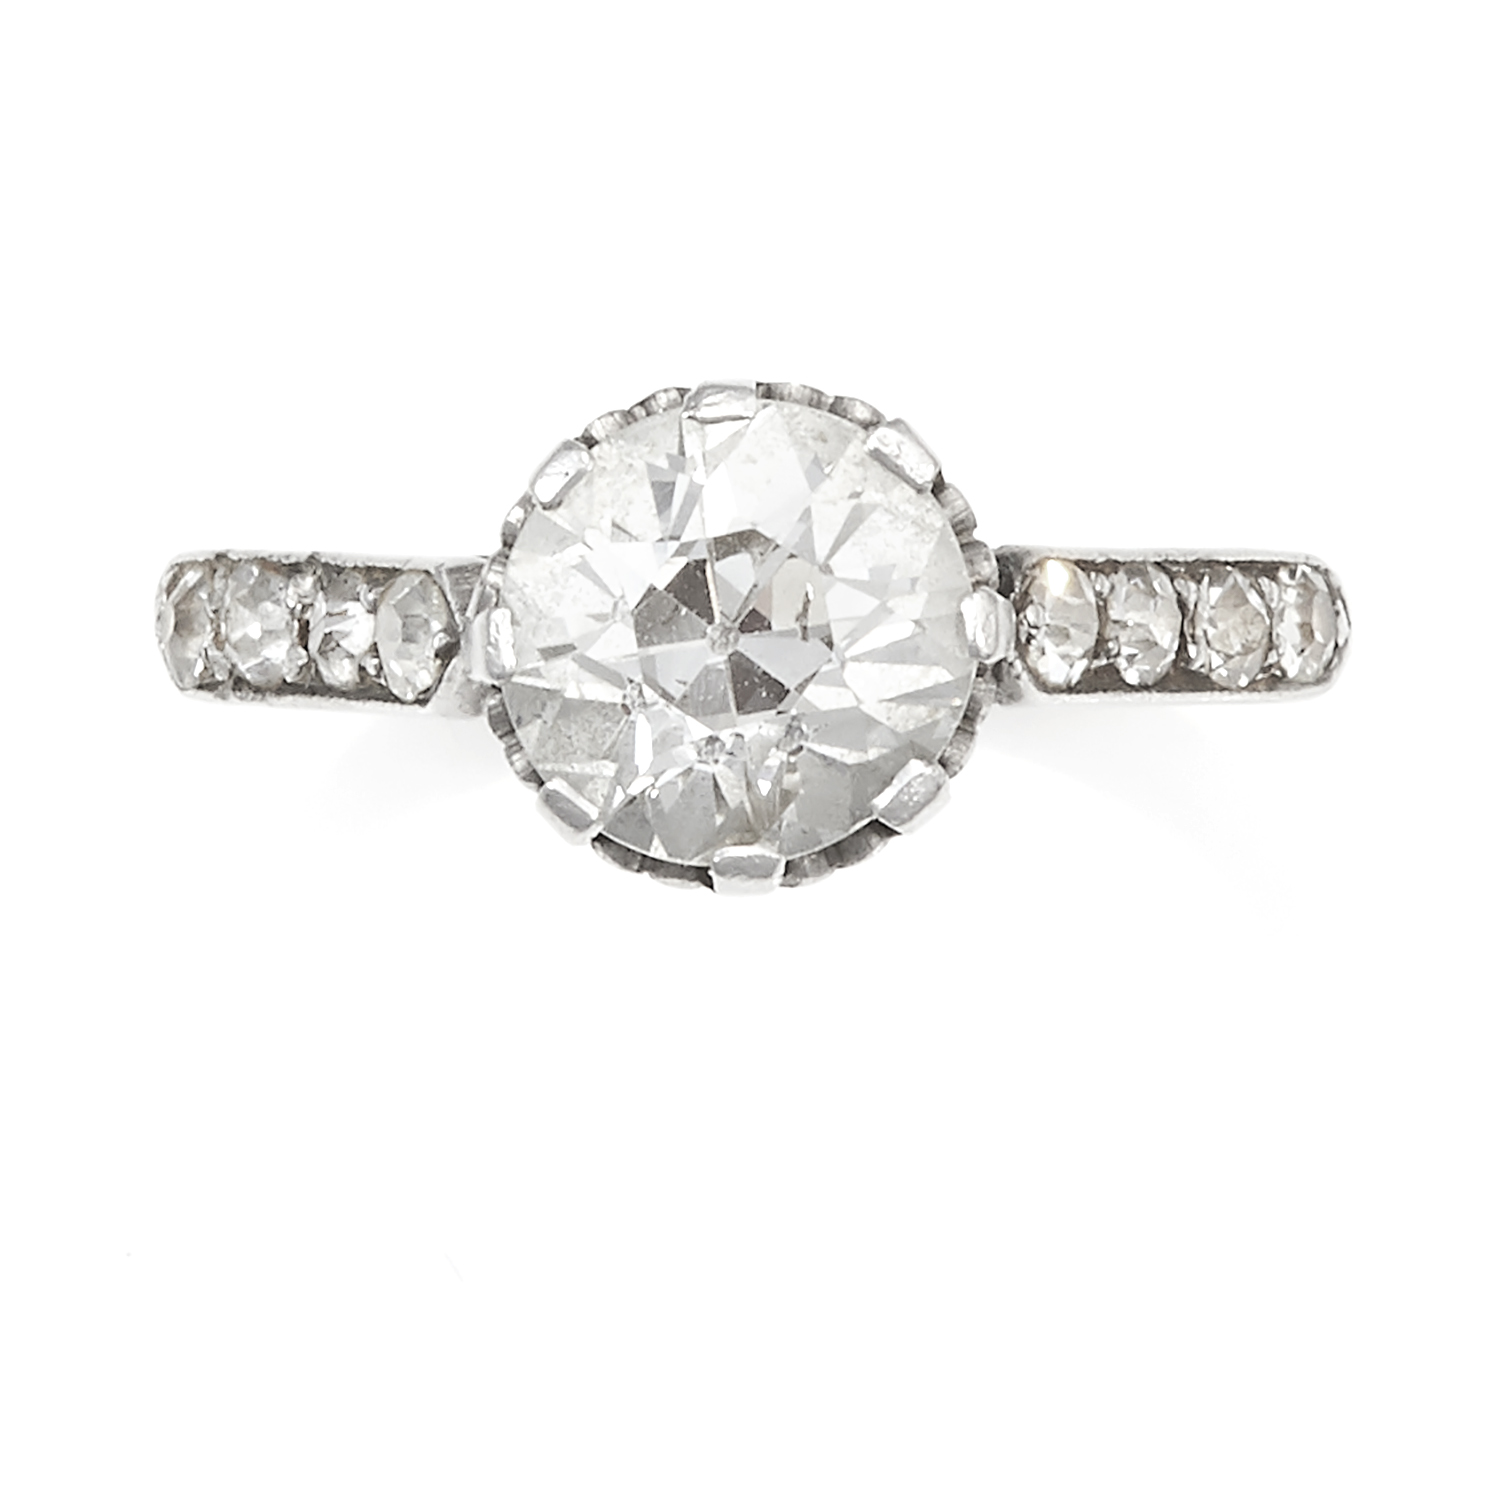 Los 23 - AN ANTIQUE 1.80 CARAT SOLITAIRE DIAMOND RING in white gold or platinum, set with an old European cut